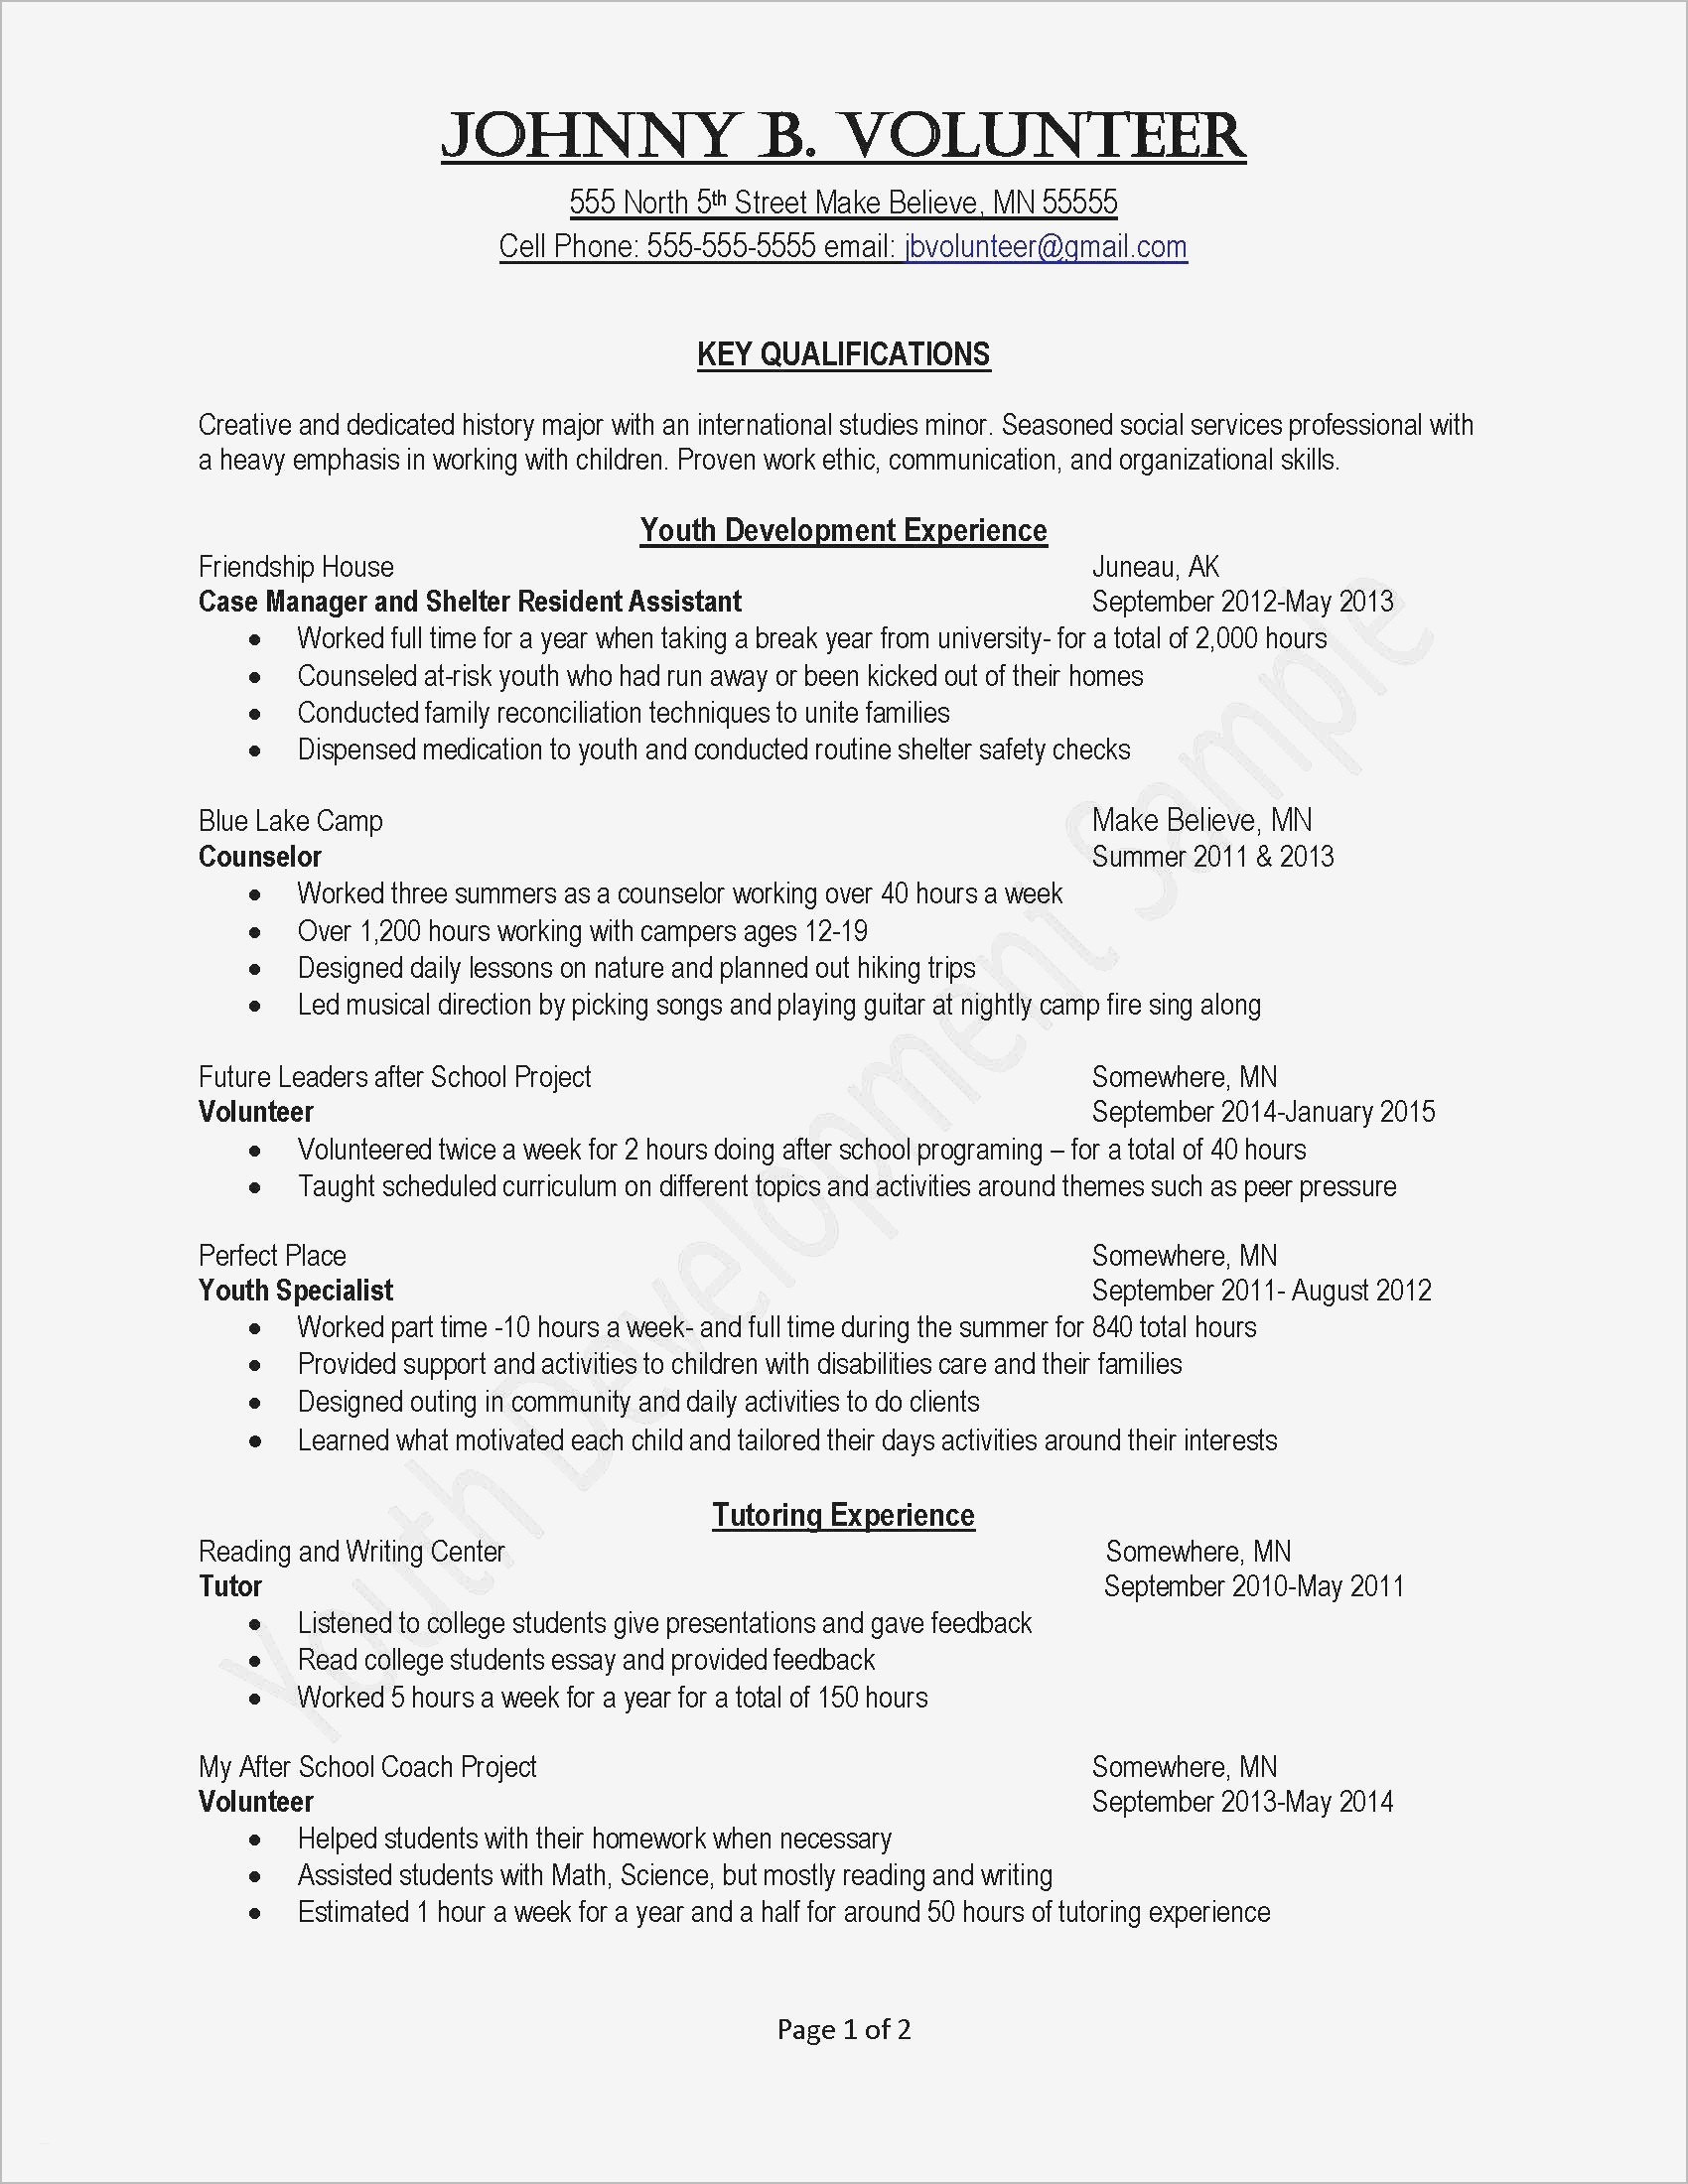 Simple Cover Letter Template Free - Resume Cover Page Template Free Simple Job Fer Letter Template Us